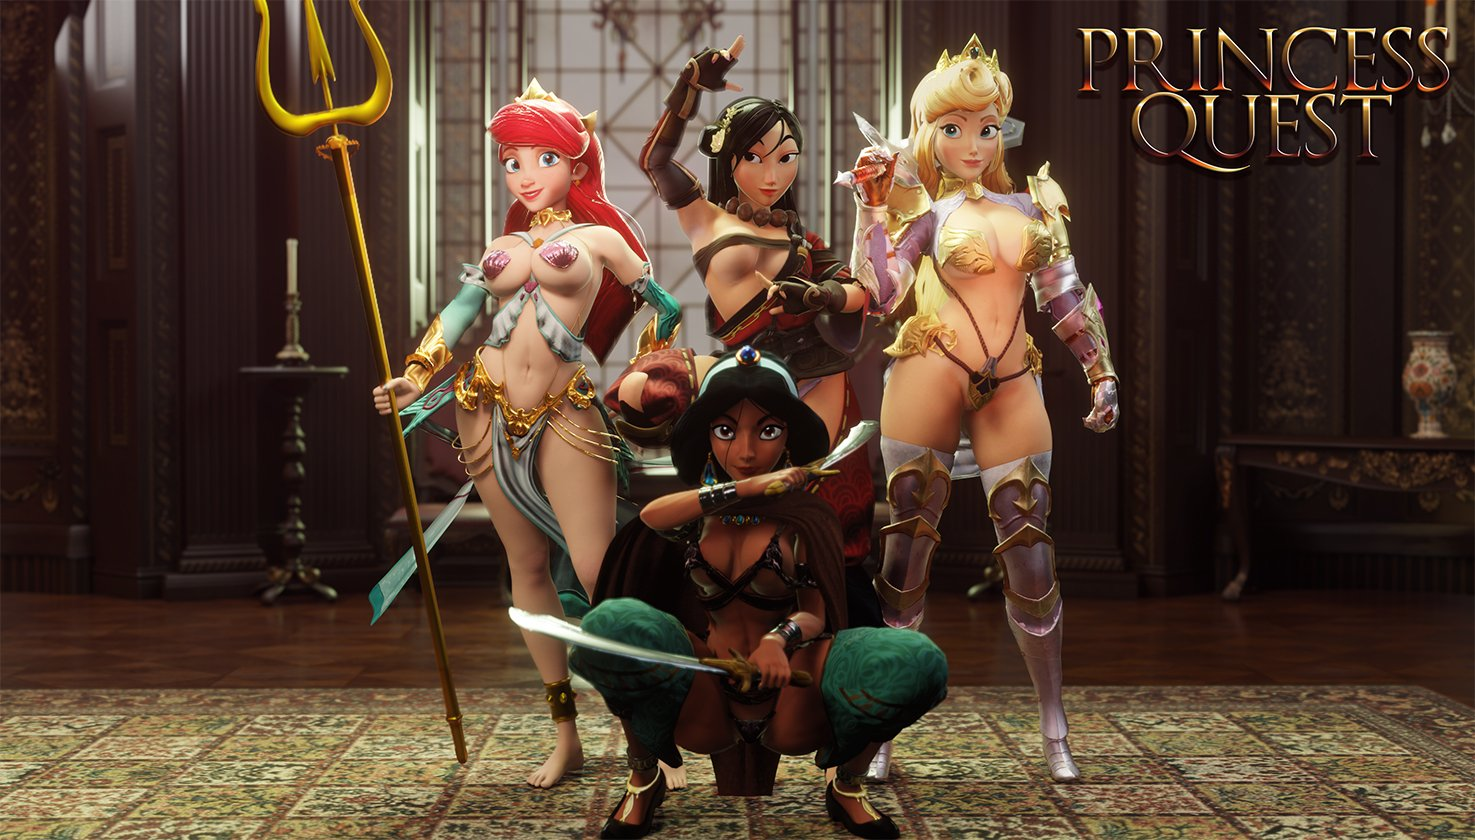 3D Porn Princess princess quest is looking mighty nice